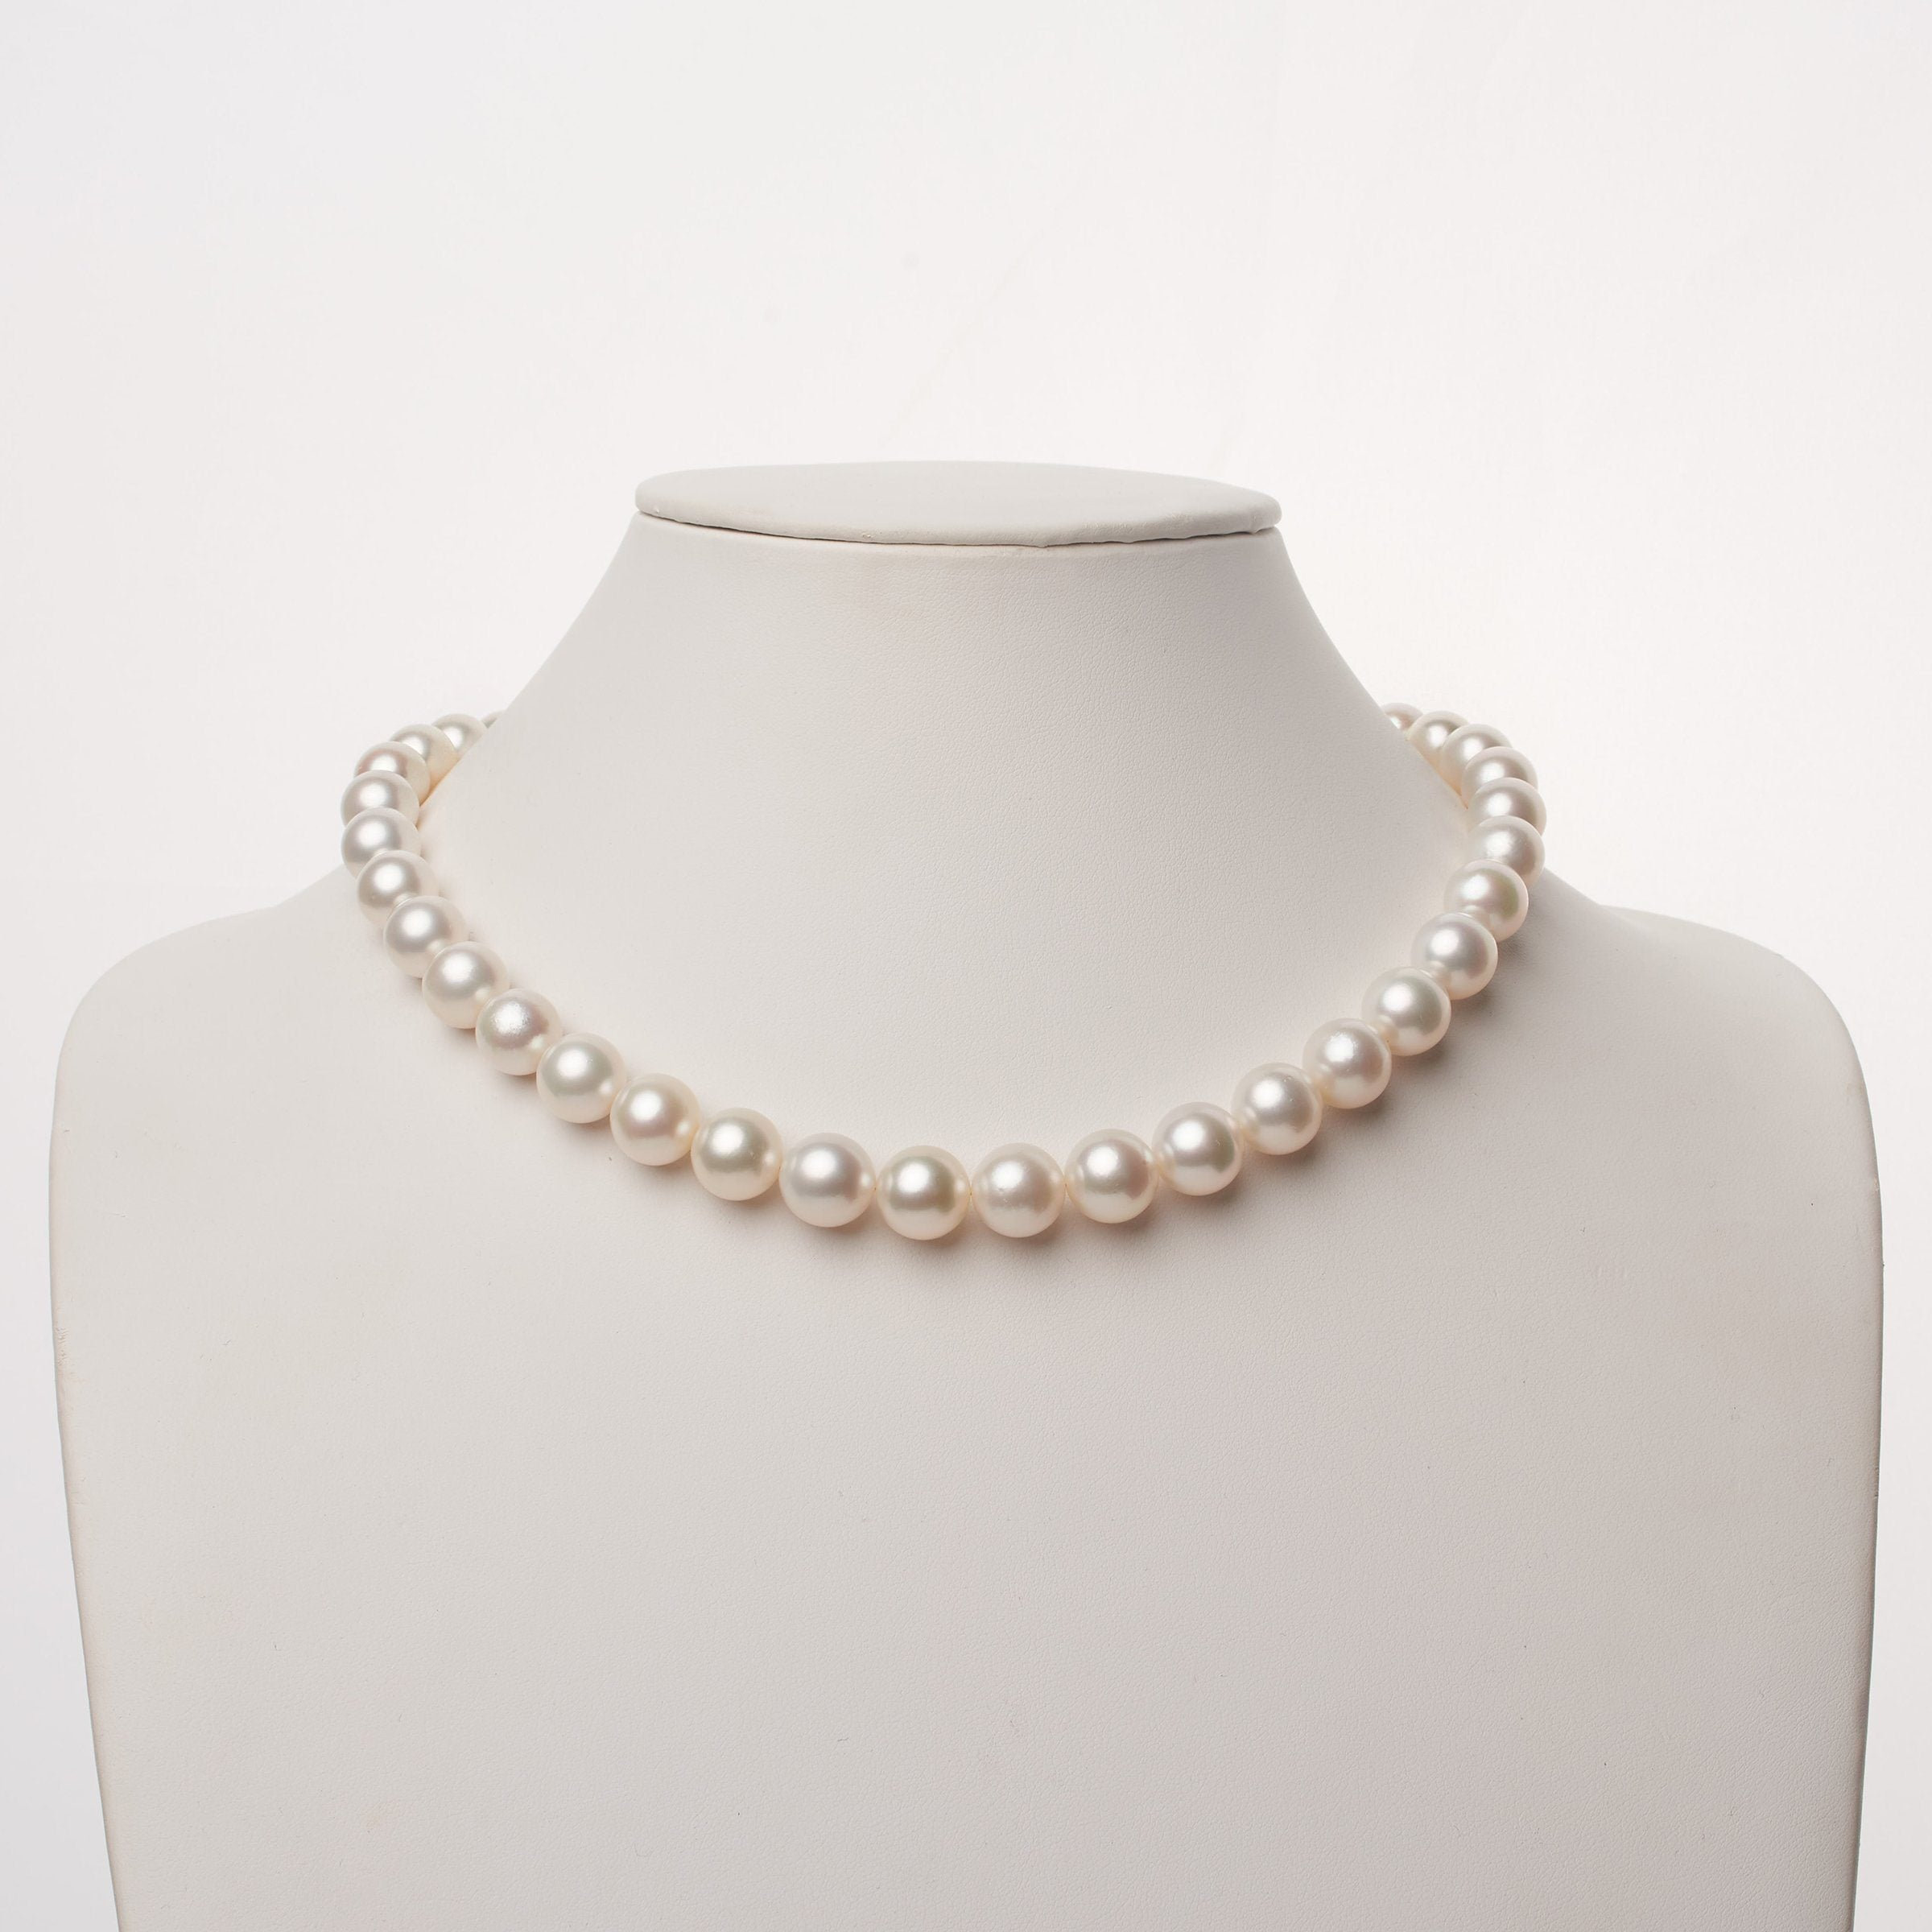 10.0-12.0 mm AA+/AAA White South Sea Round Pearl Necklace